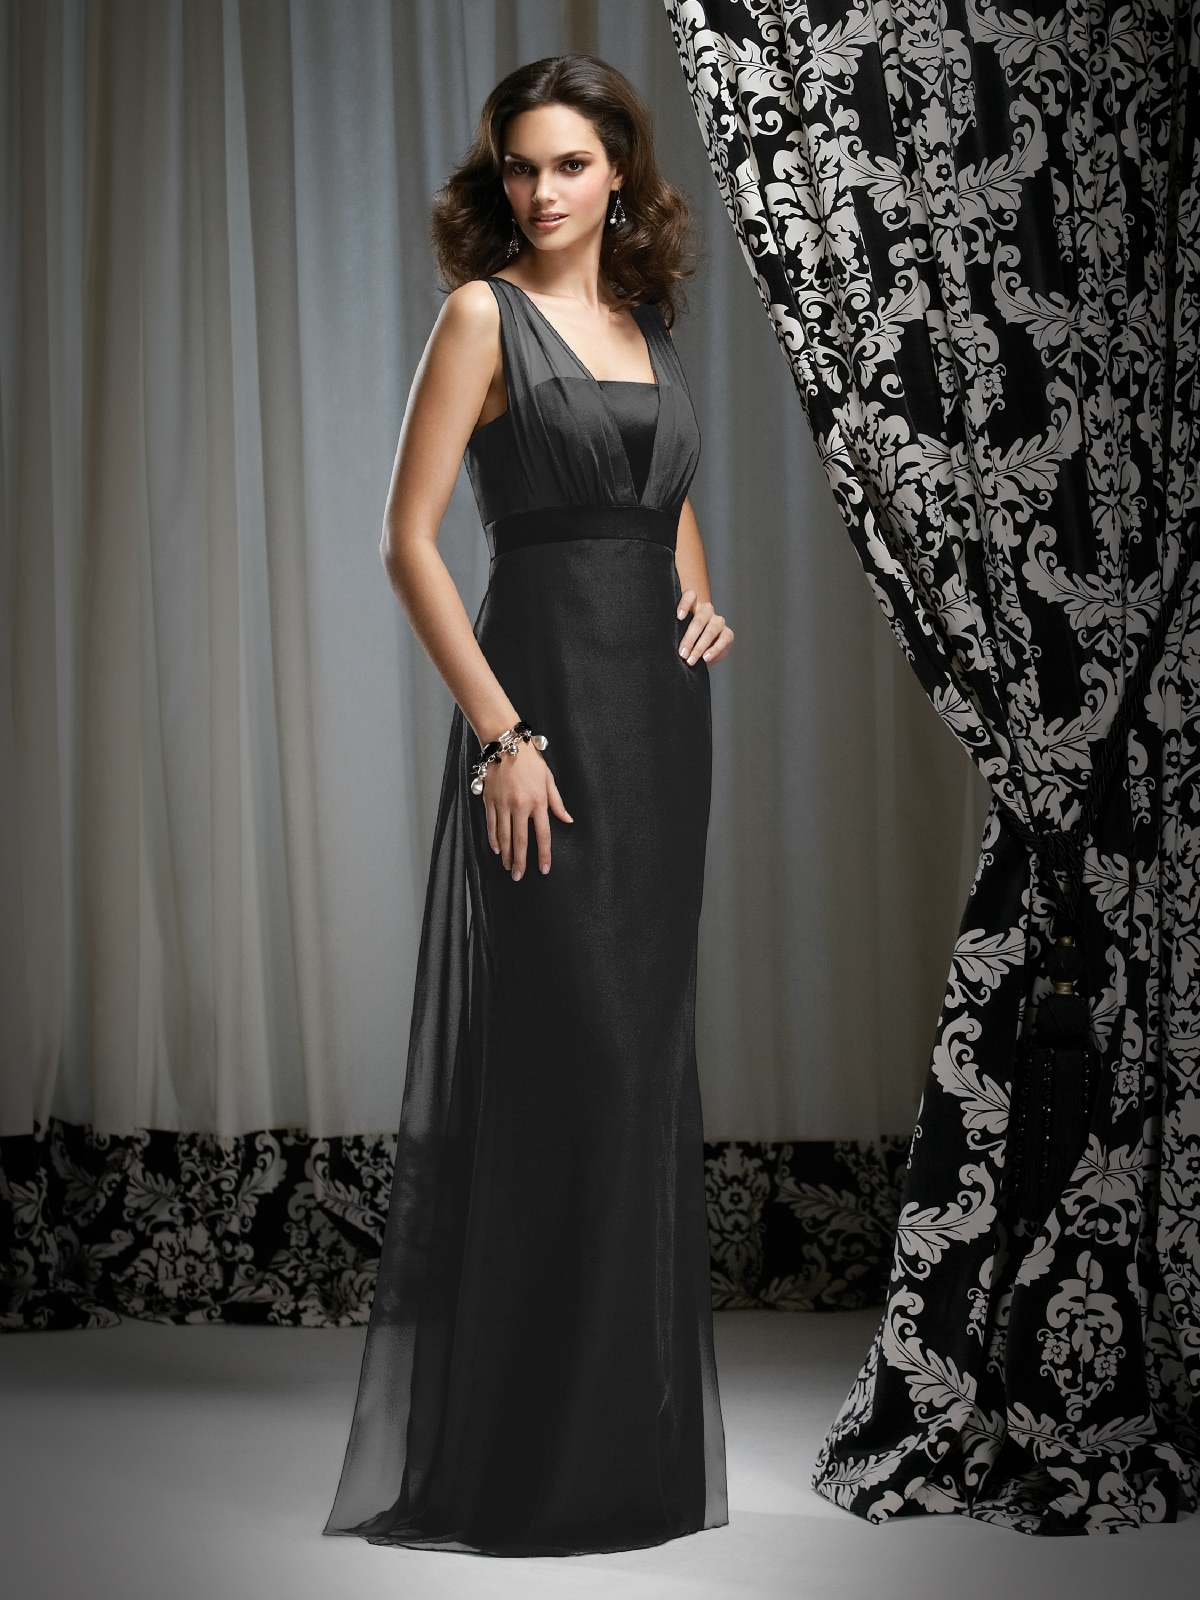 Elegant Black Column Strap Floor Length Satin Prom Dresses With Sash